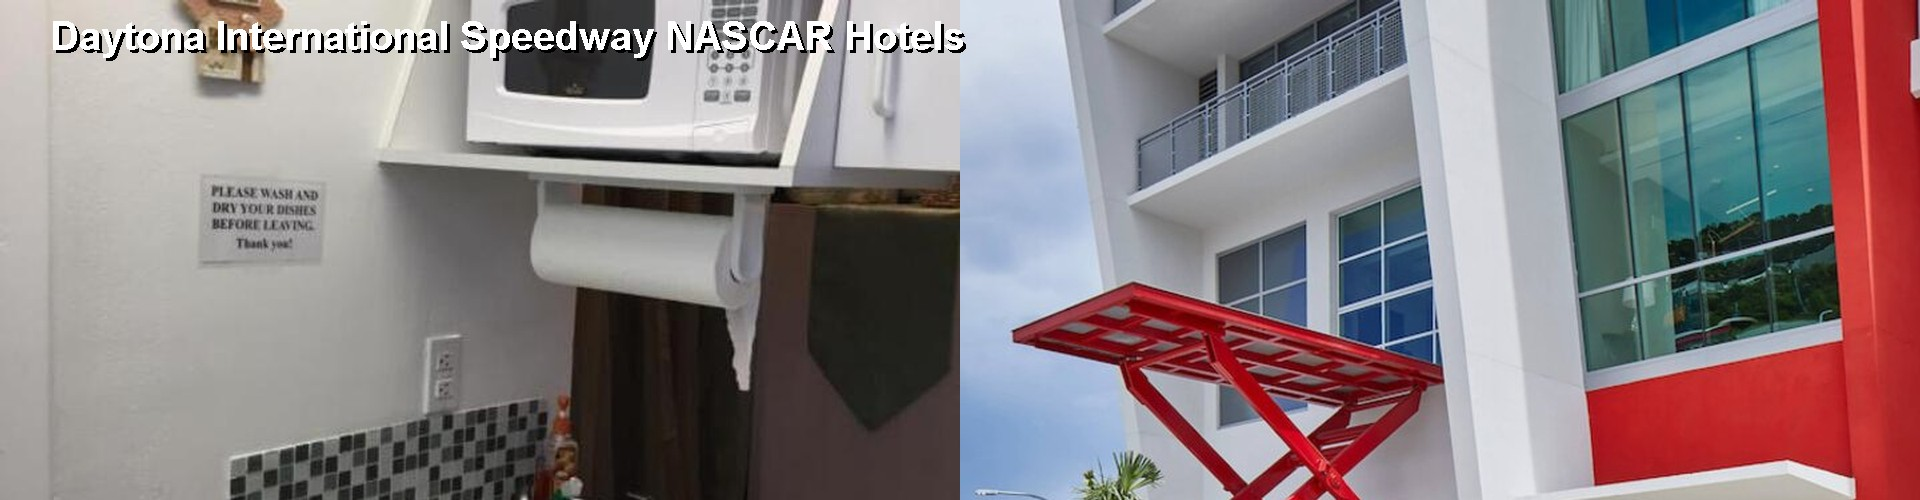 5 Best Hotels near Daytona International Speedway